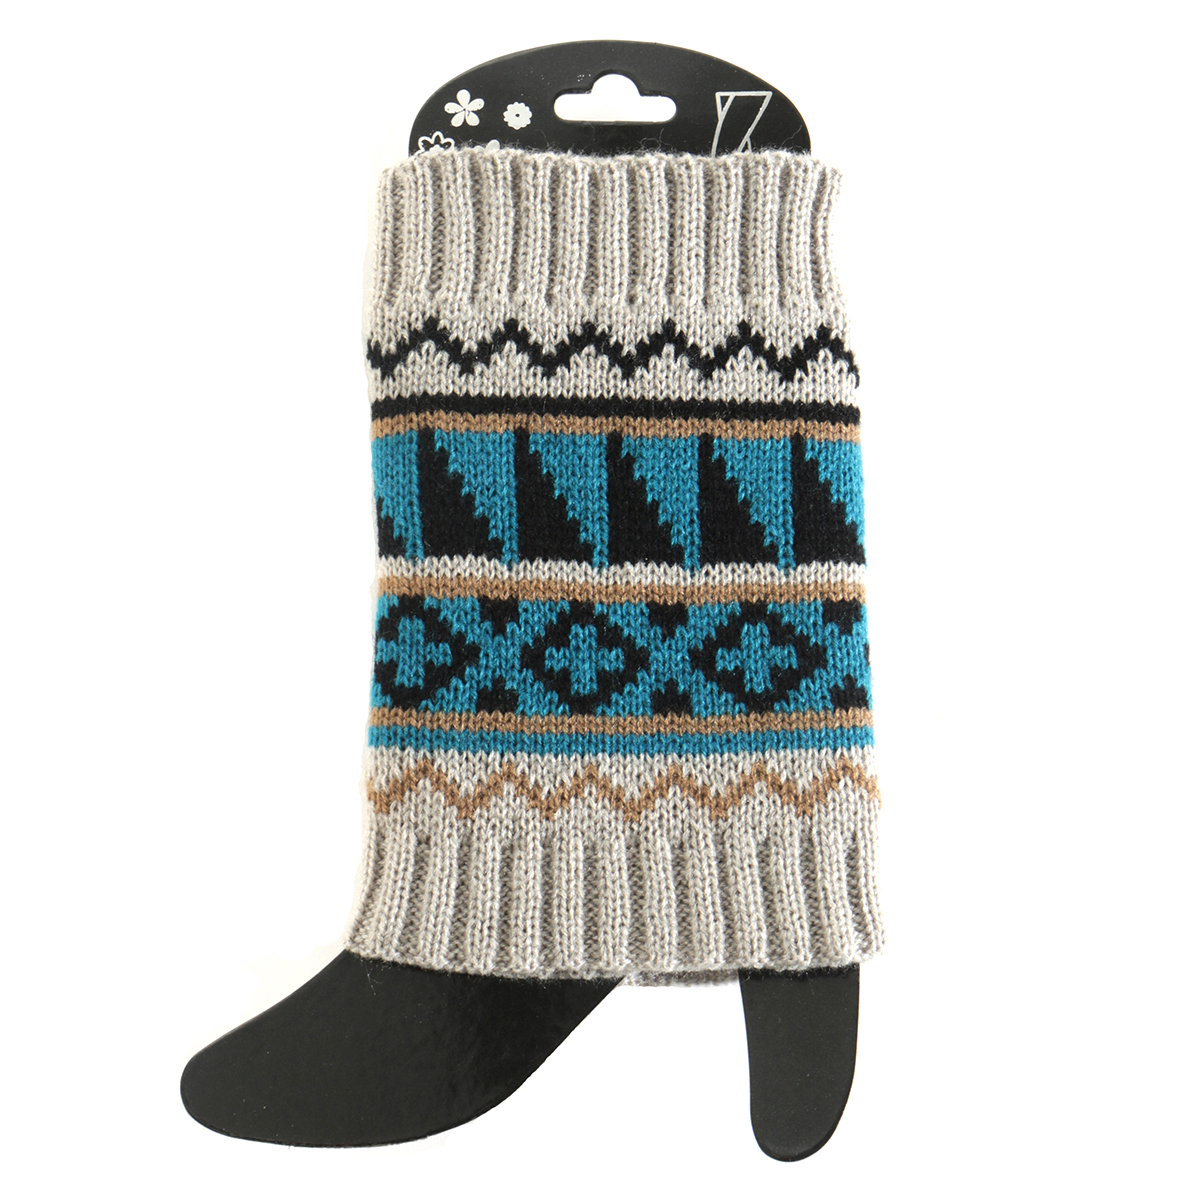 Grey/Teal Sweater Boot Cuff Short 50sp